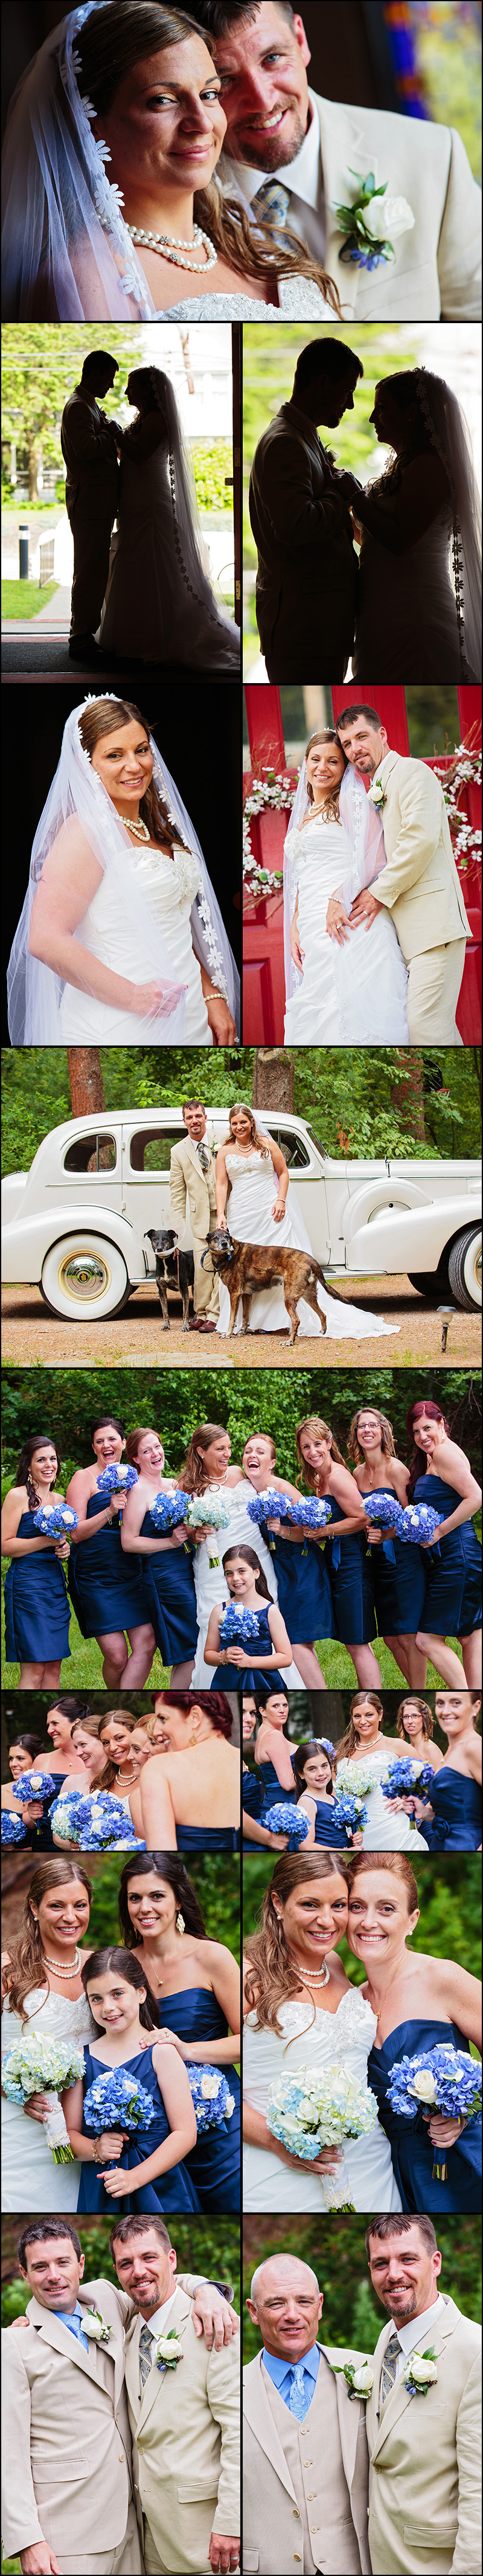 MEDFIELD WEDDING PHOTOGRAPHERS